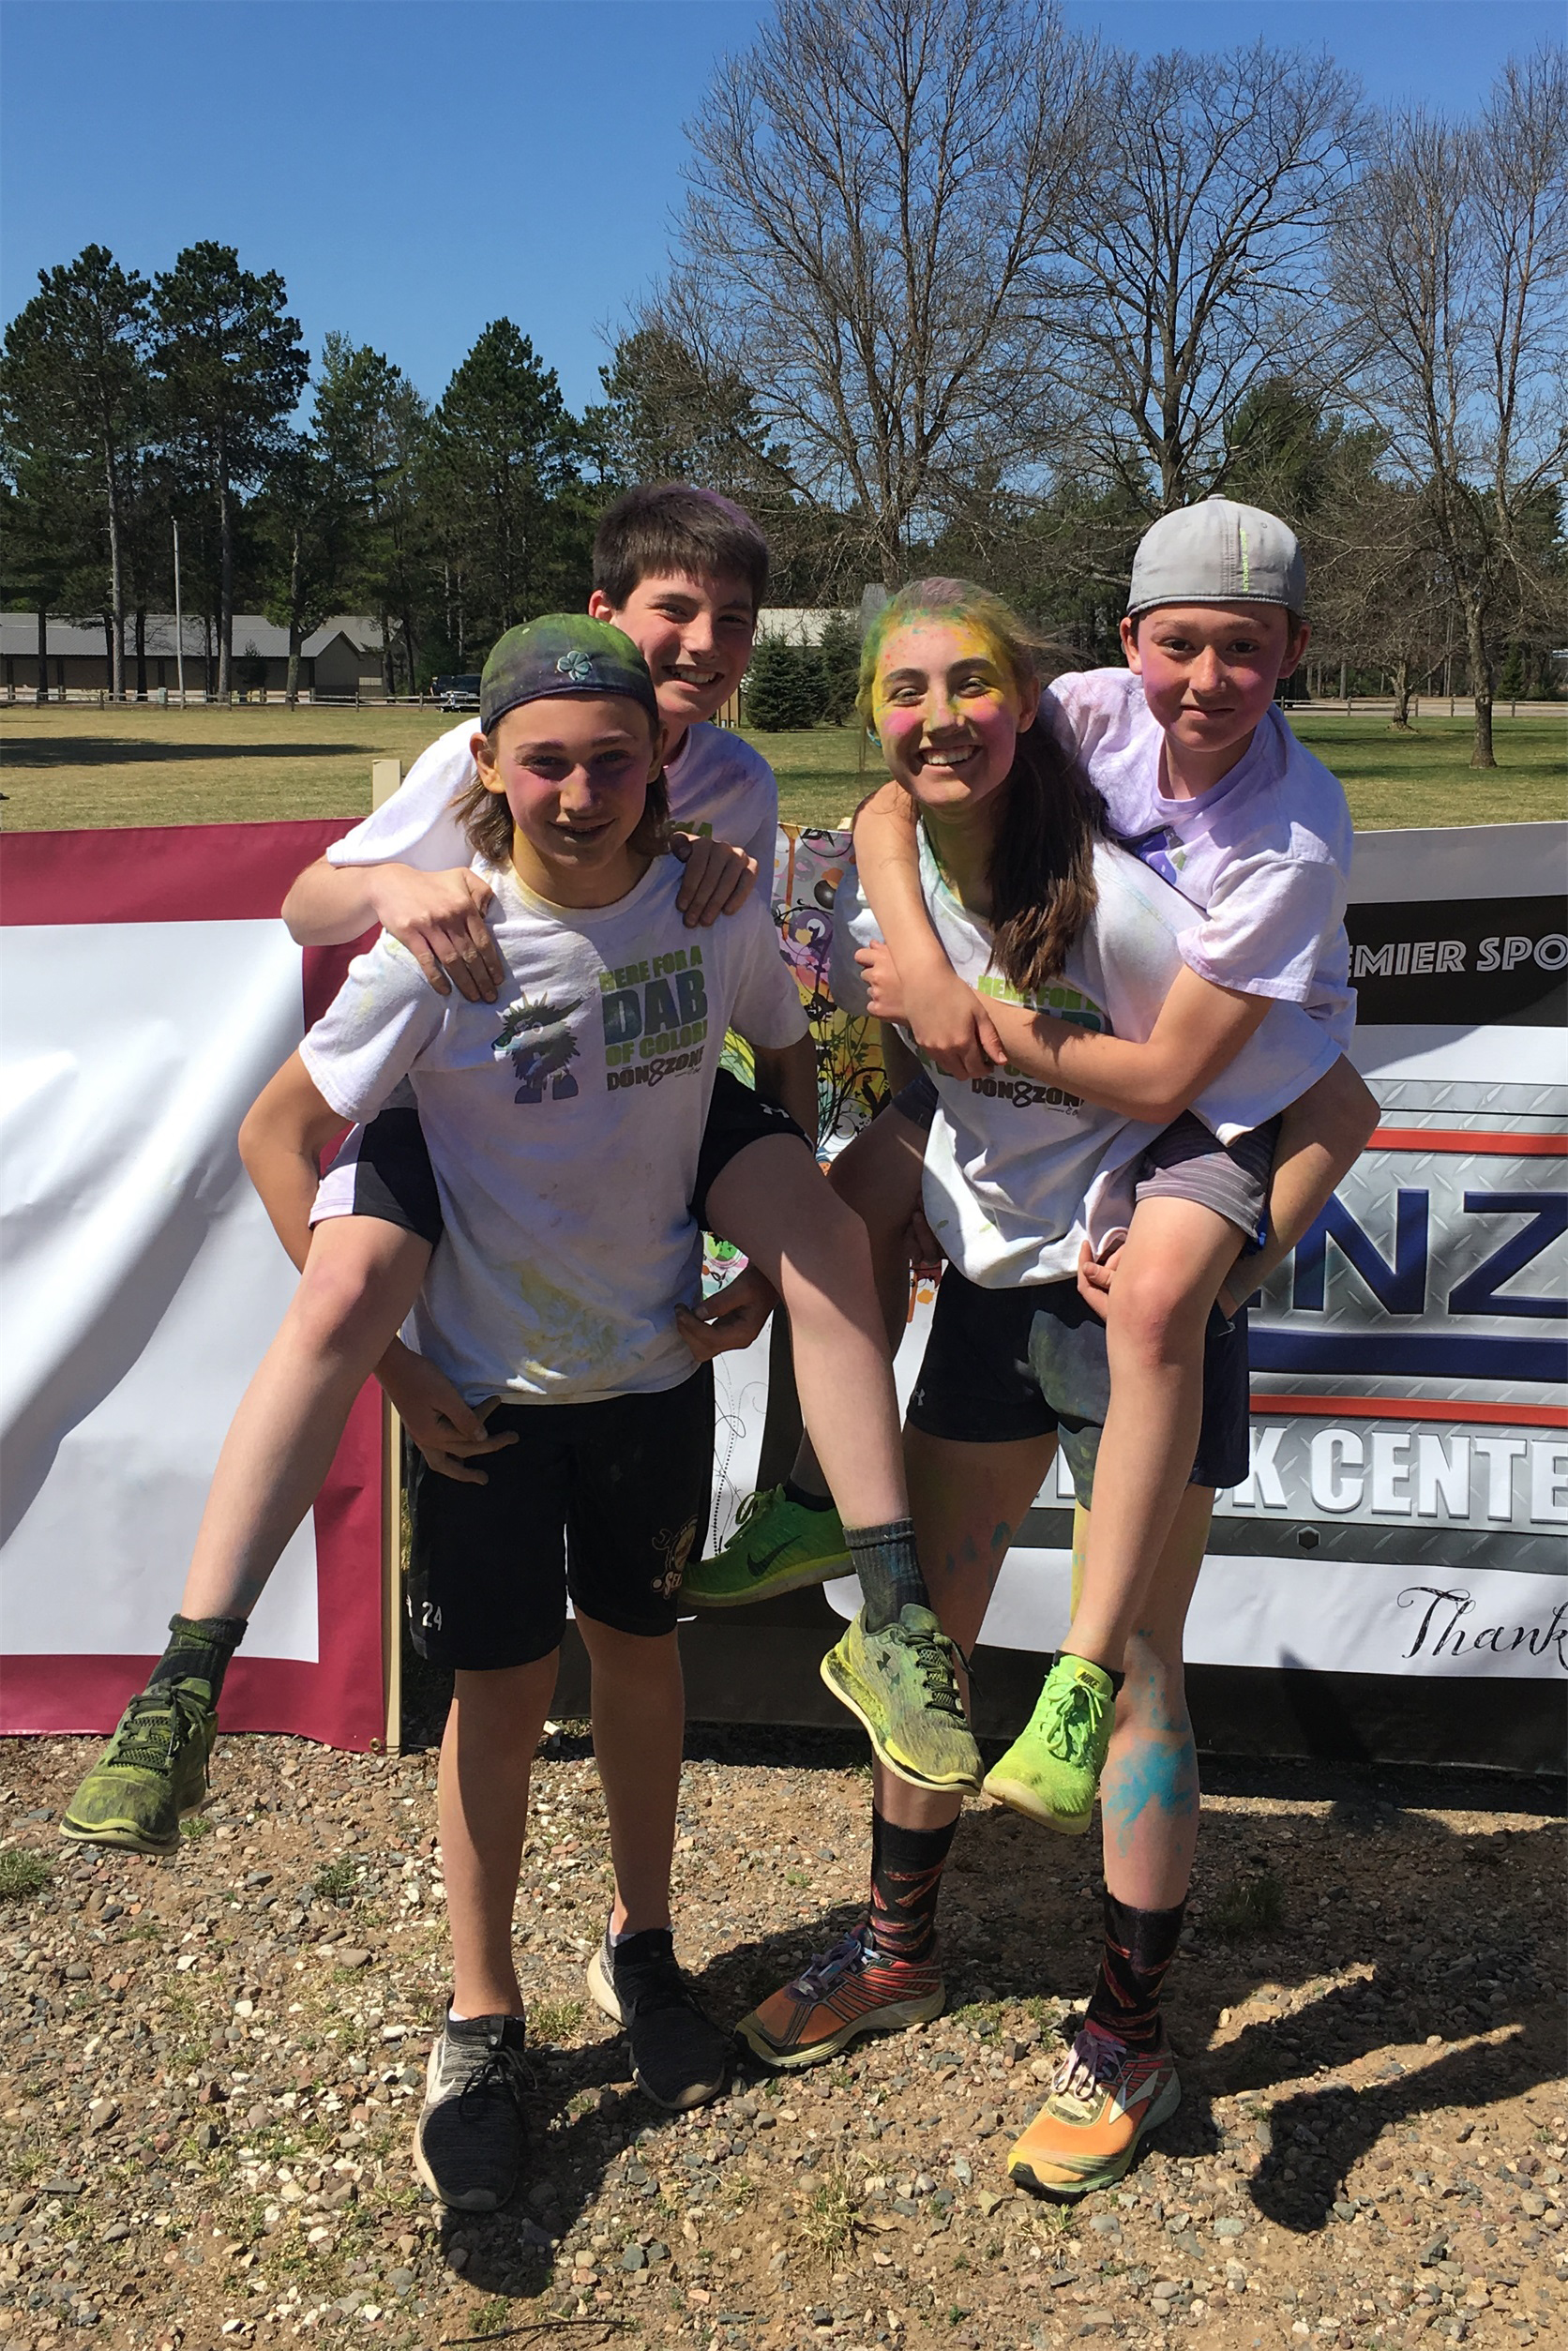 Leo, Teag, Kira and Gray are covered with colored powder from the Color Run in Minocqua. Kim Johnson photo